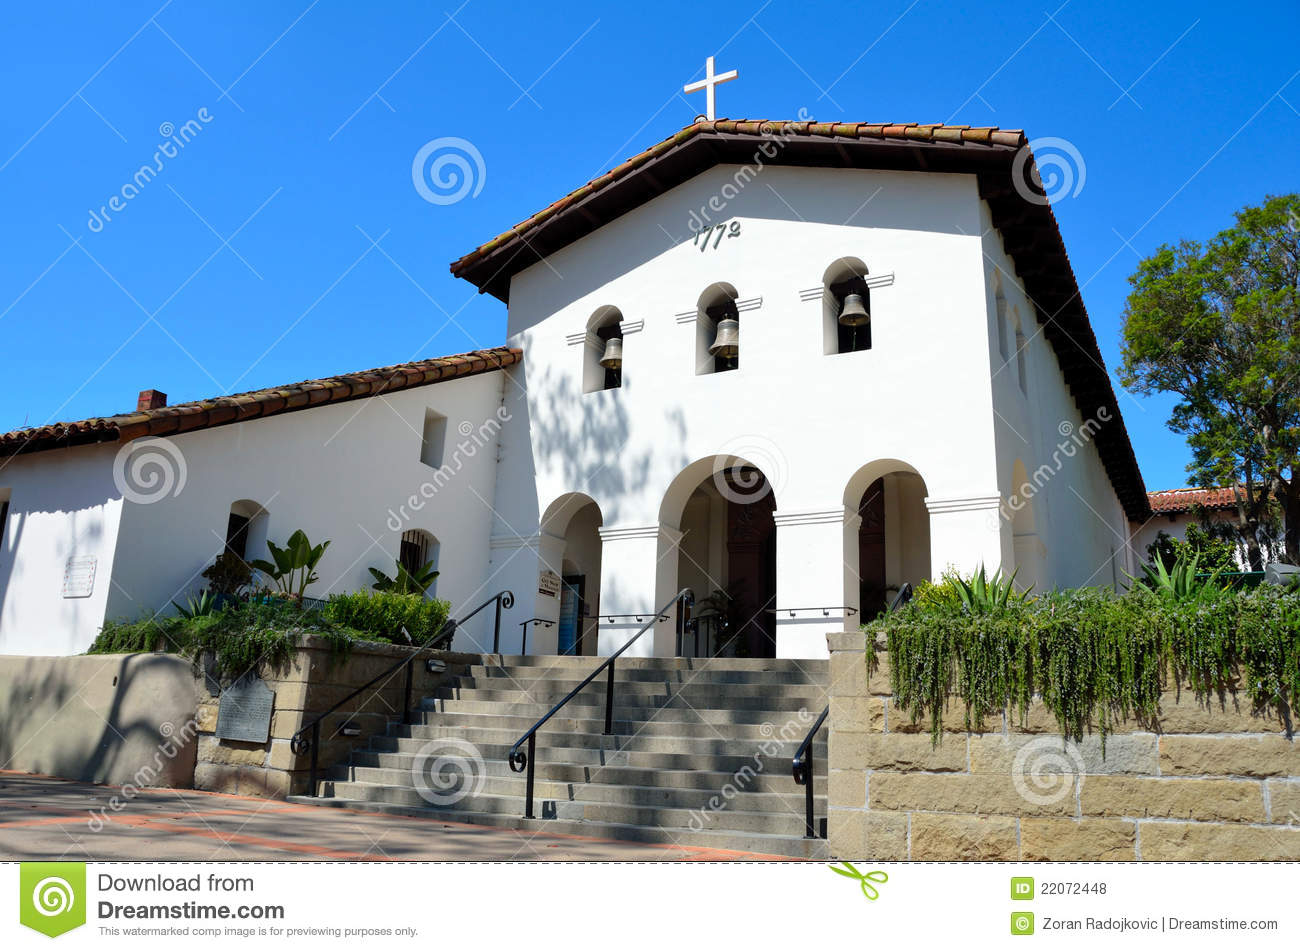 san luis obispo catholic singles Mission san diego was the first mission  through the san luis obispo area on his way to  what is today called mission san luis, obispo de.